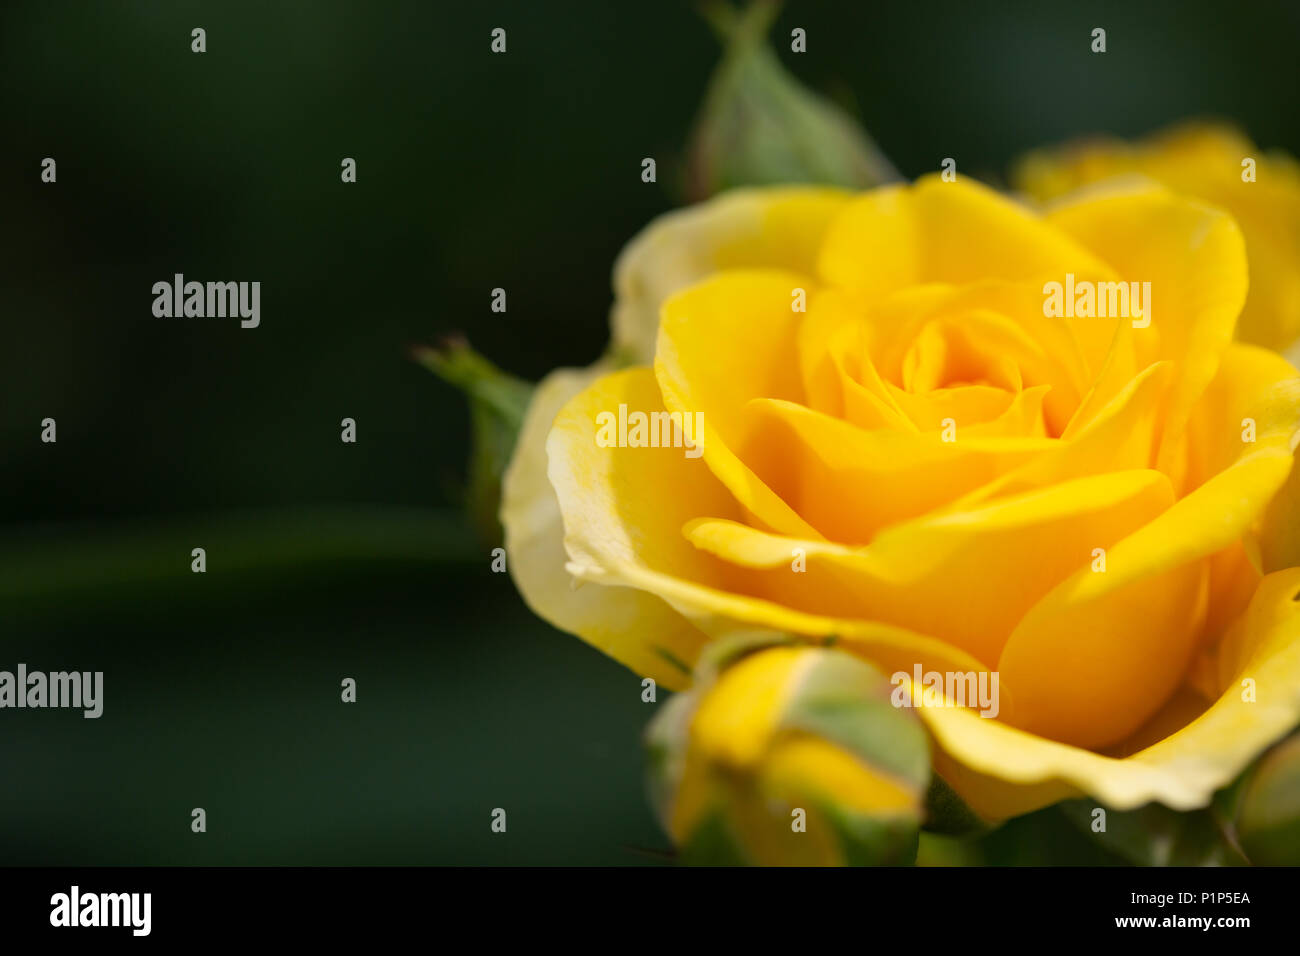 Yellow Rose Meaning Bright Cheerful And Joyful Create Warm Feelings